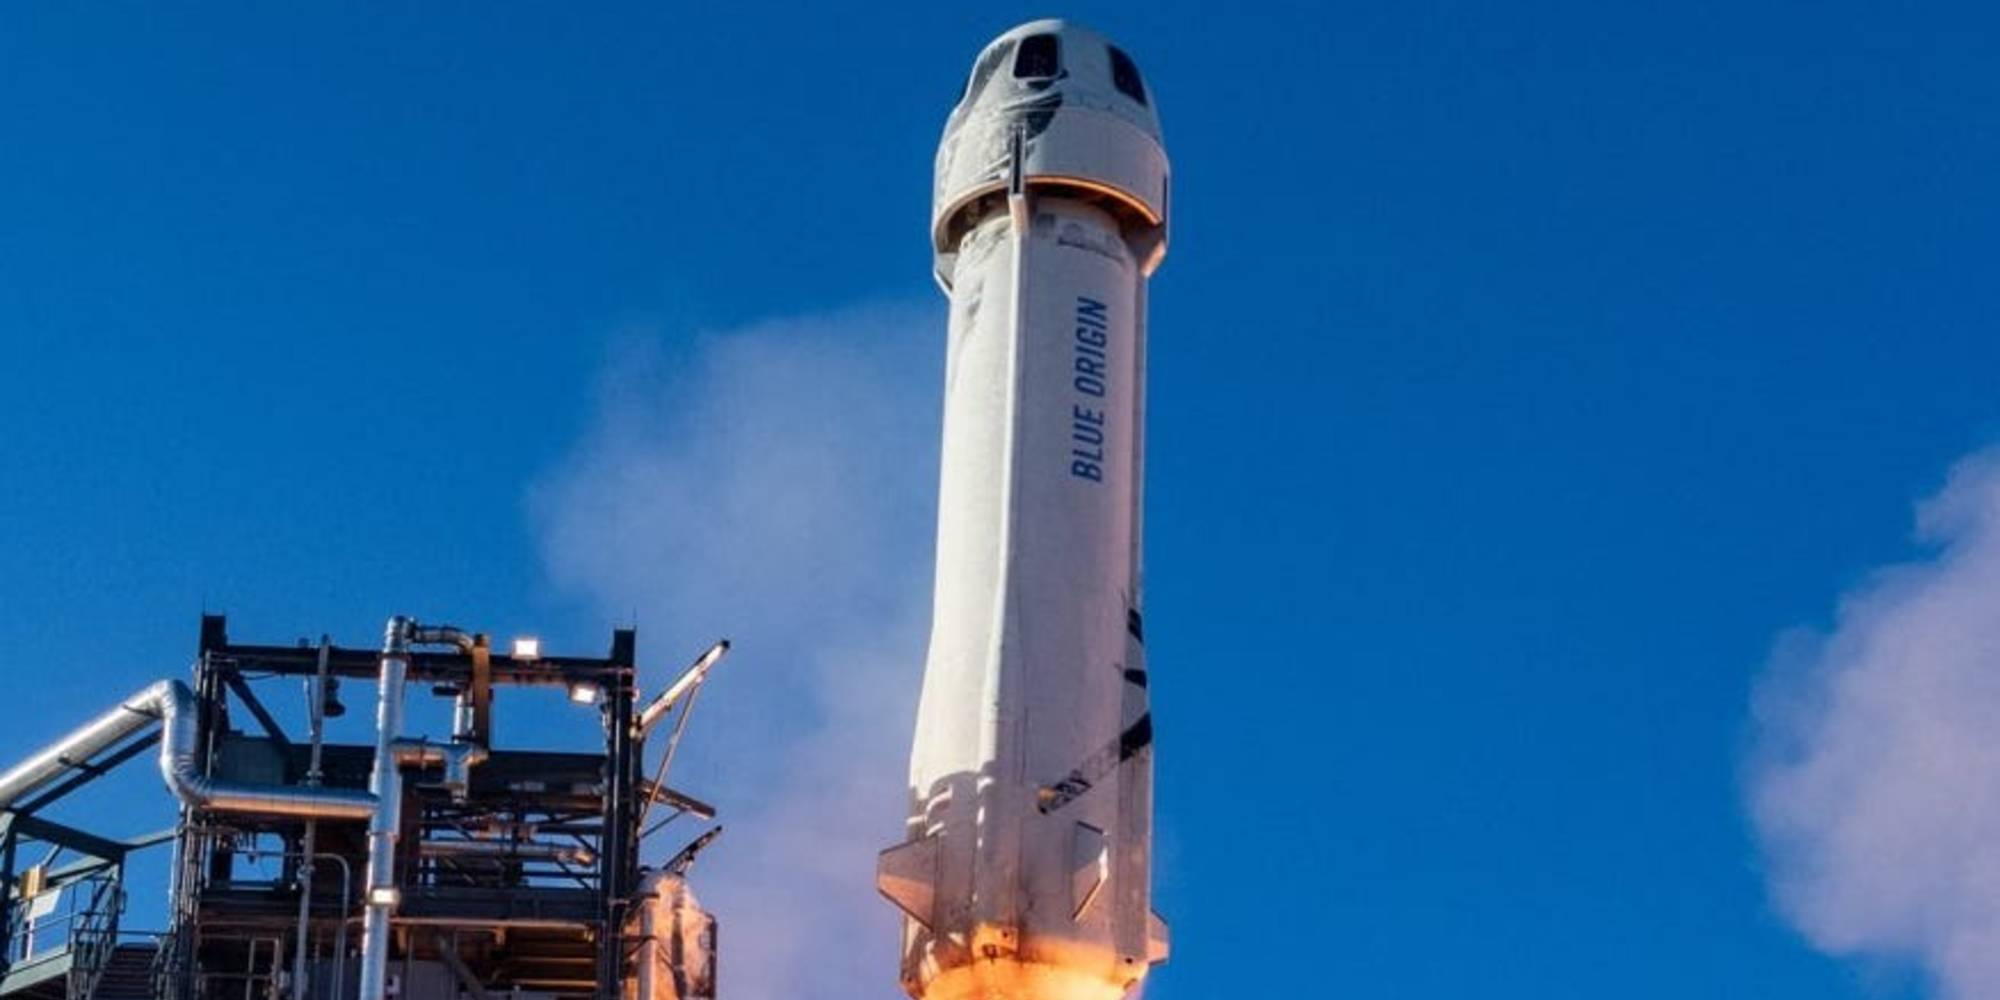 A replica of the rocket that sent Jeff Bezos into space is on pre-sale